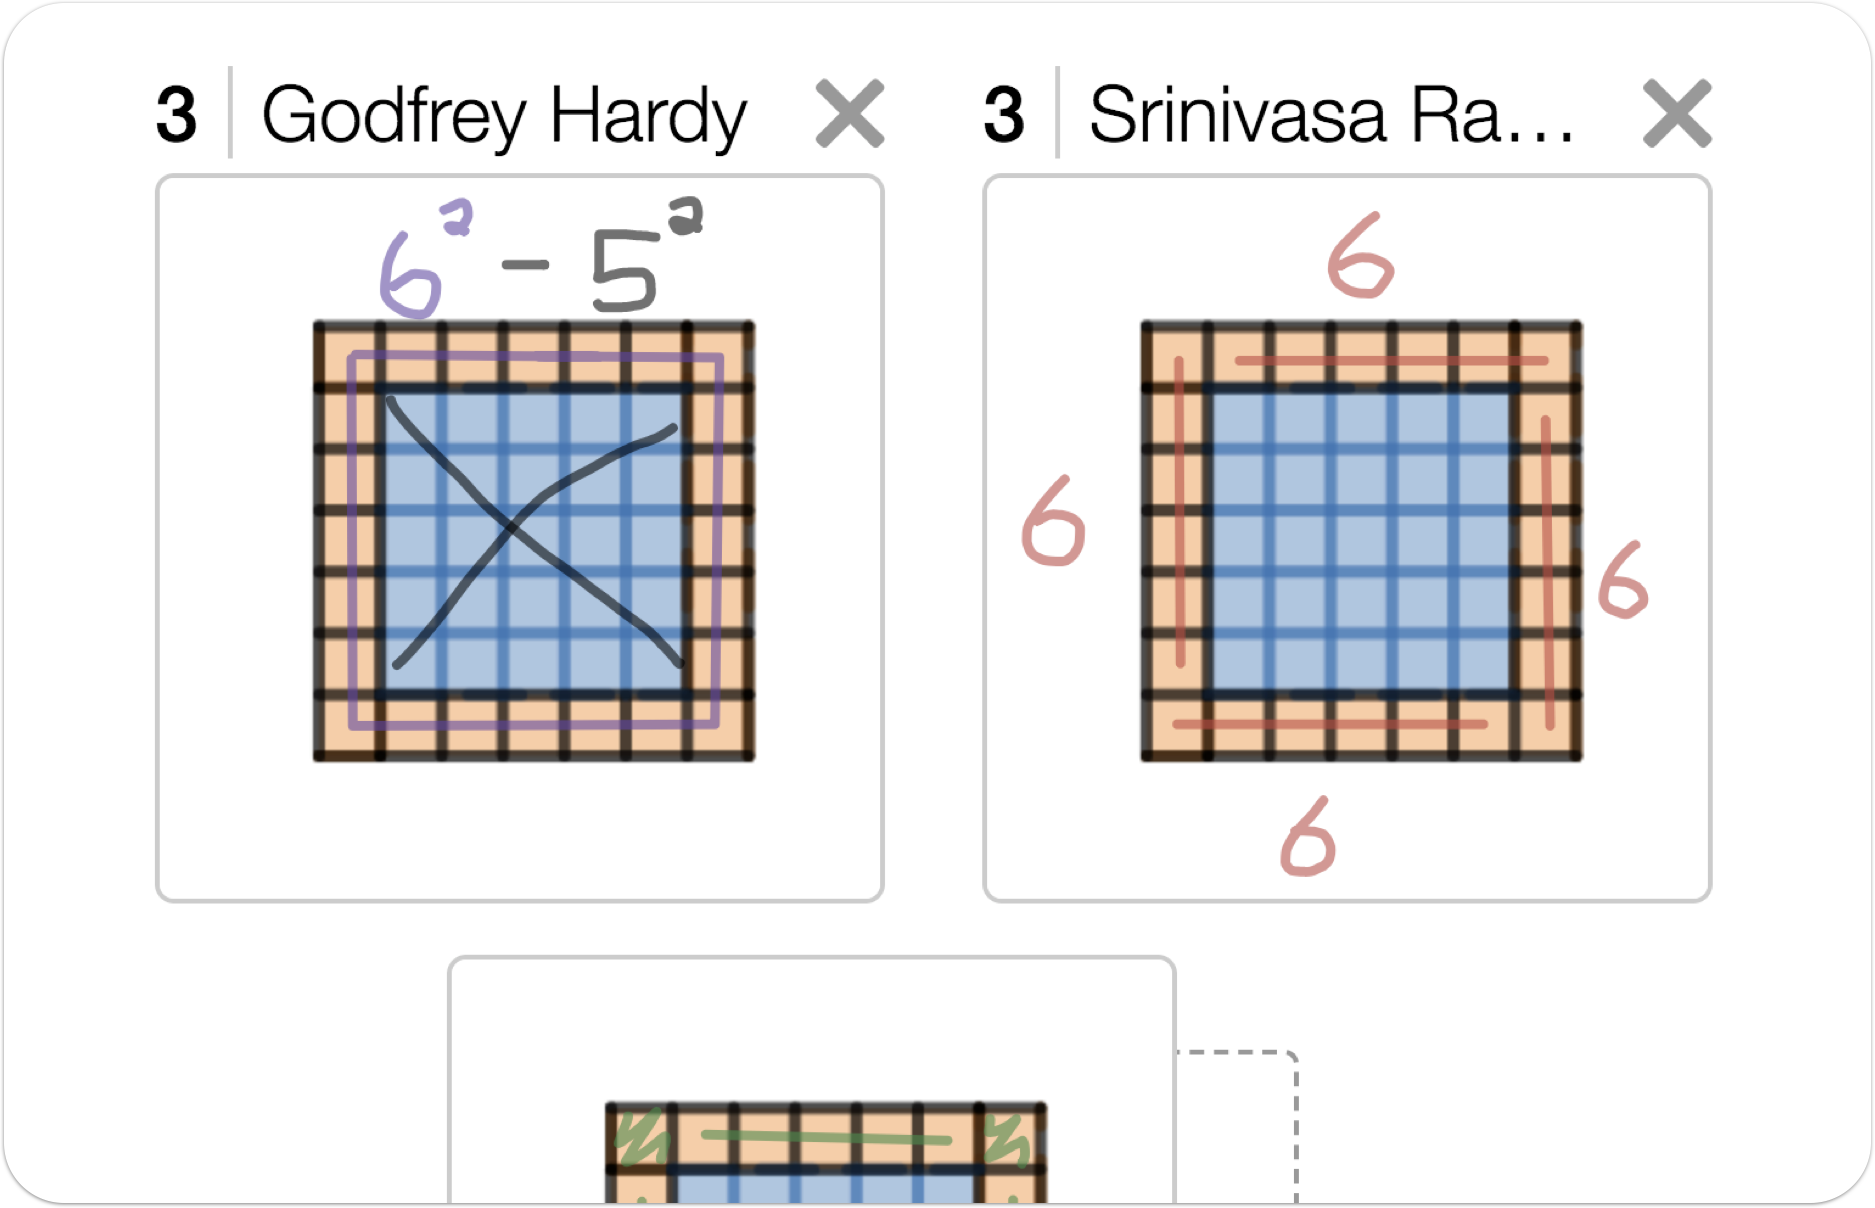 An image showing three Screen 3 sketch snapshots organized into a collection.